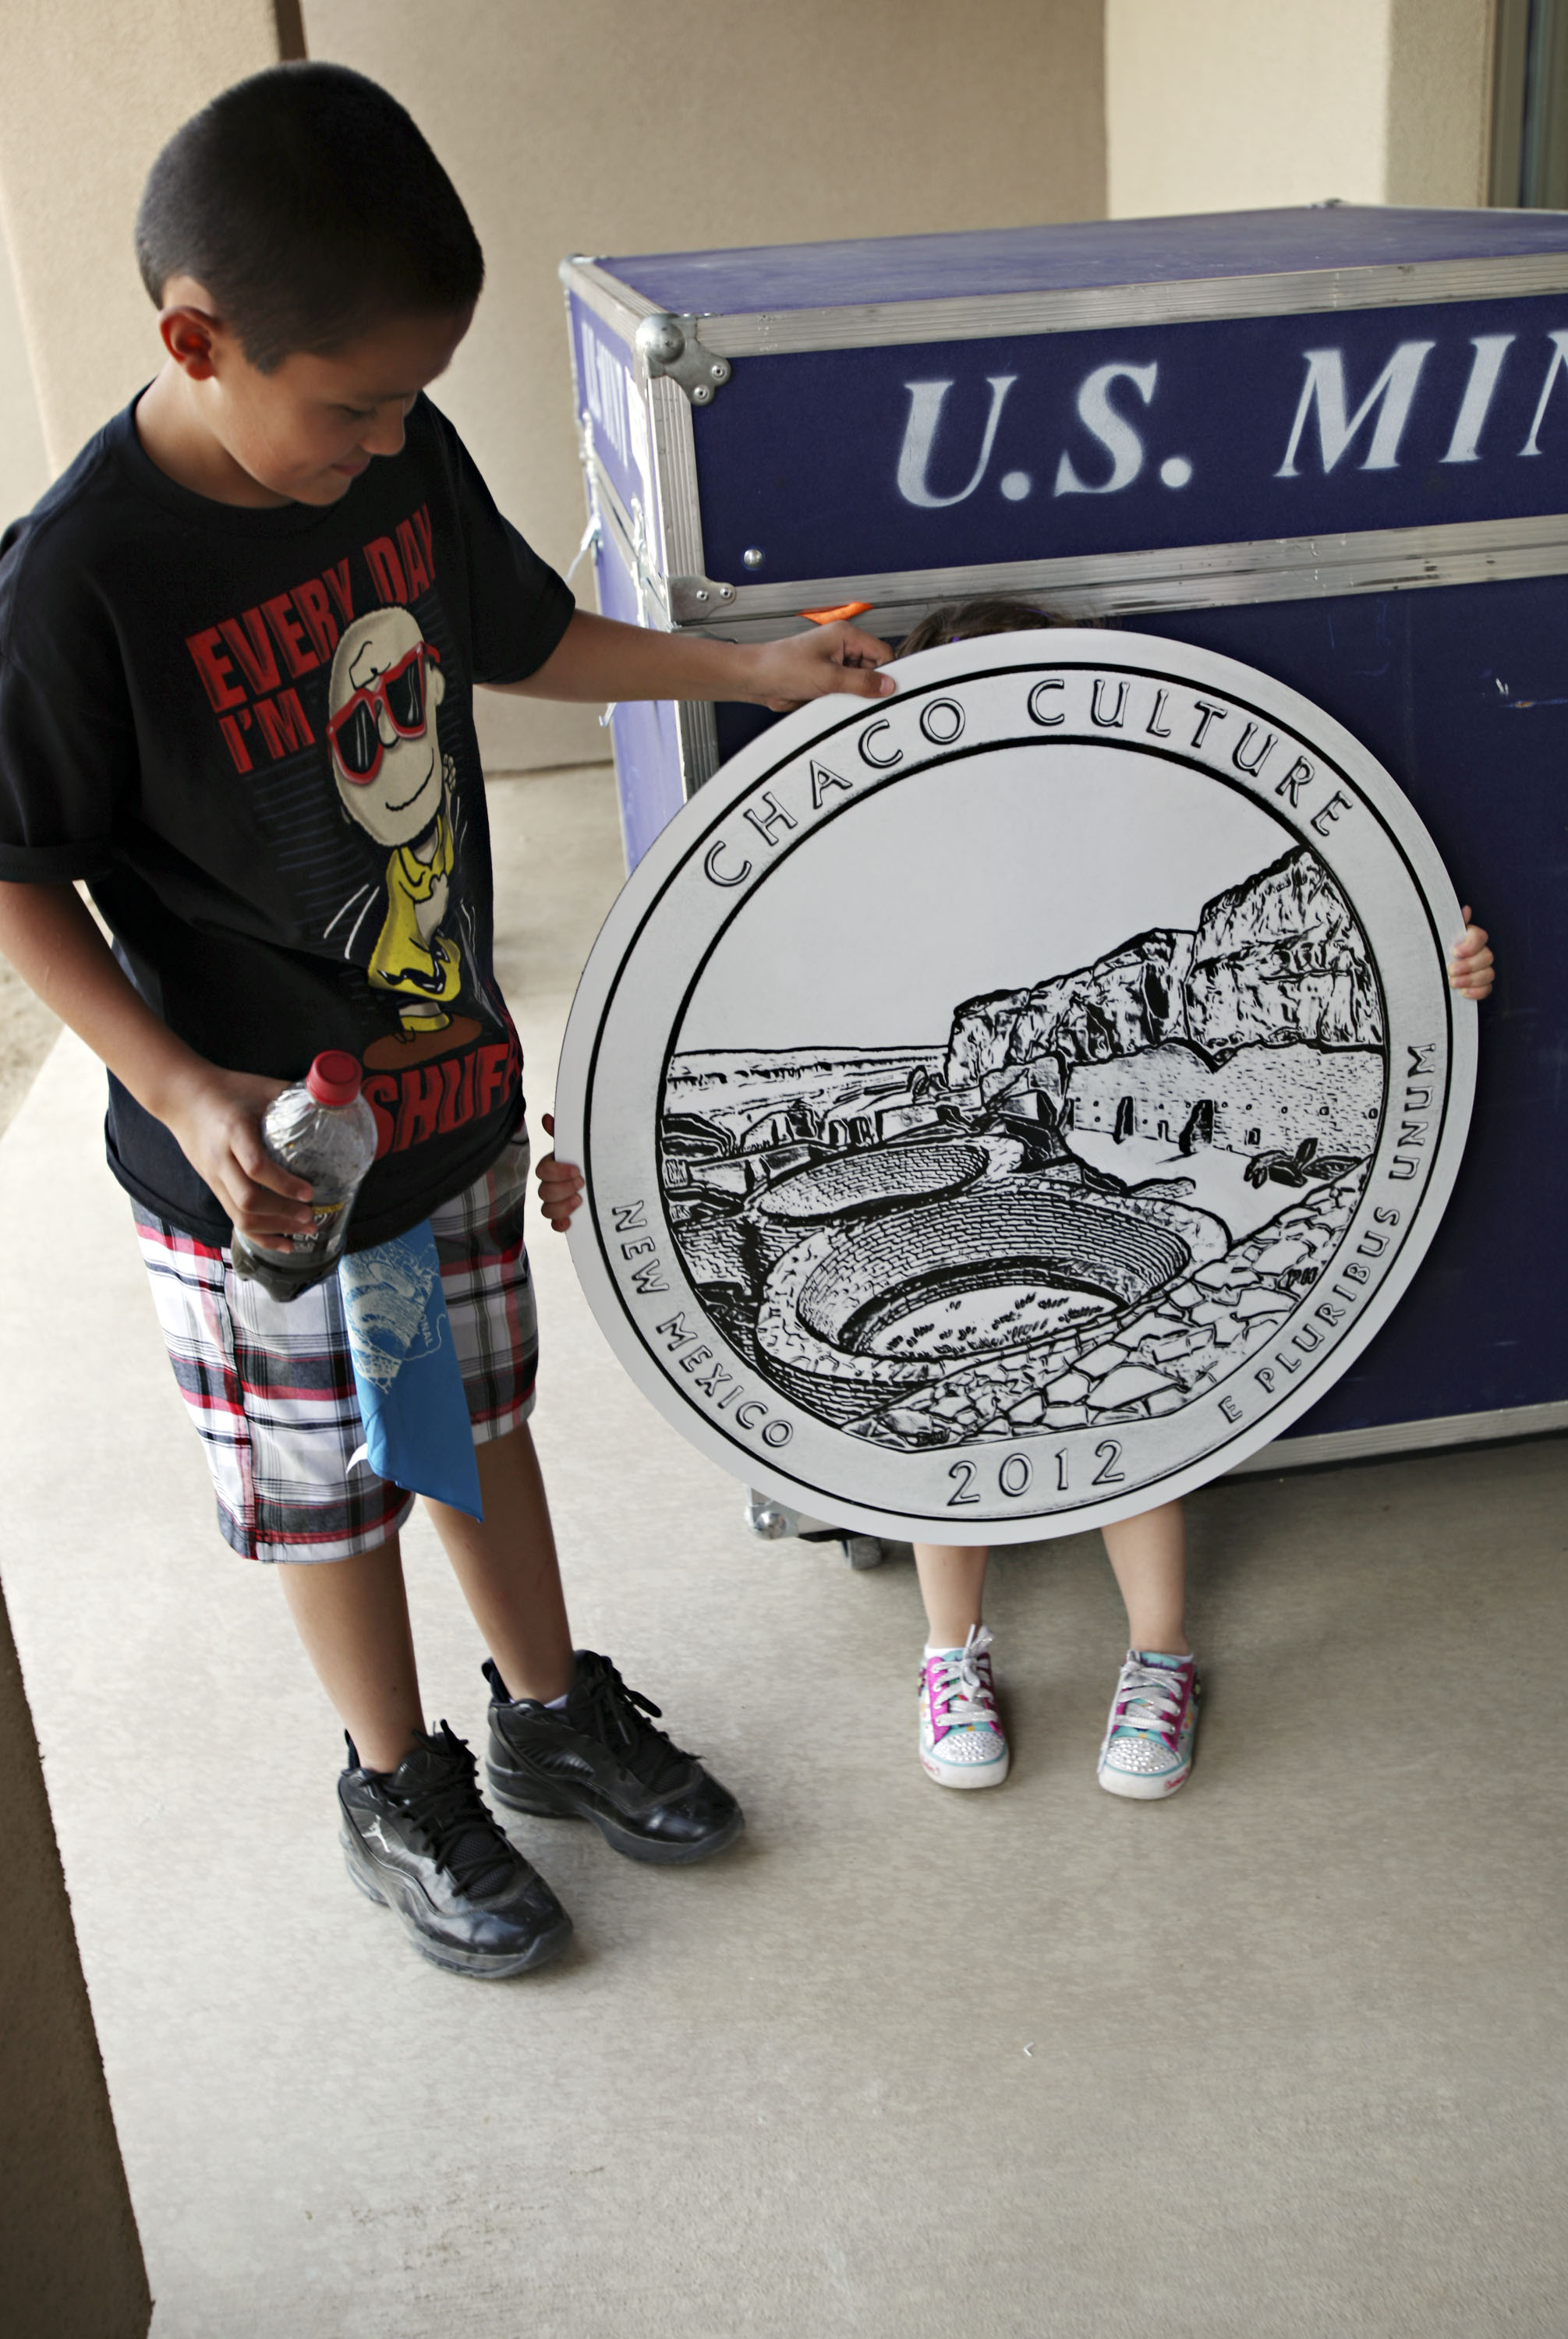 Peyton Gallegos, 3, hides behind the Chaco Canyon quarter prop after posing for a photo with her brother, Timothy Gallegos, 11, after the official quarter launch at Chaco Canyon, Thursday, April 26, 2012. The children were visiting with their mother, Denise Gallegos from Chama. (Morgan Petroski/Albuquerque Journal)